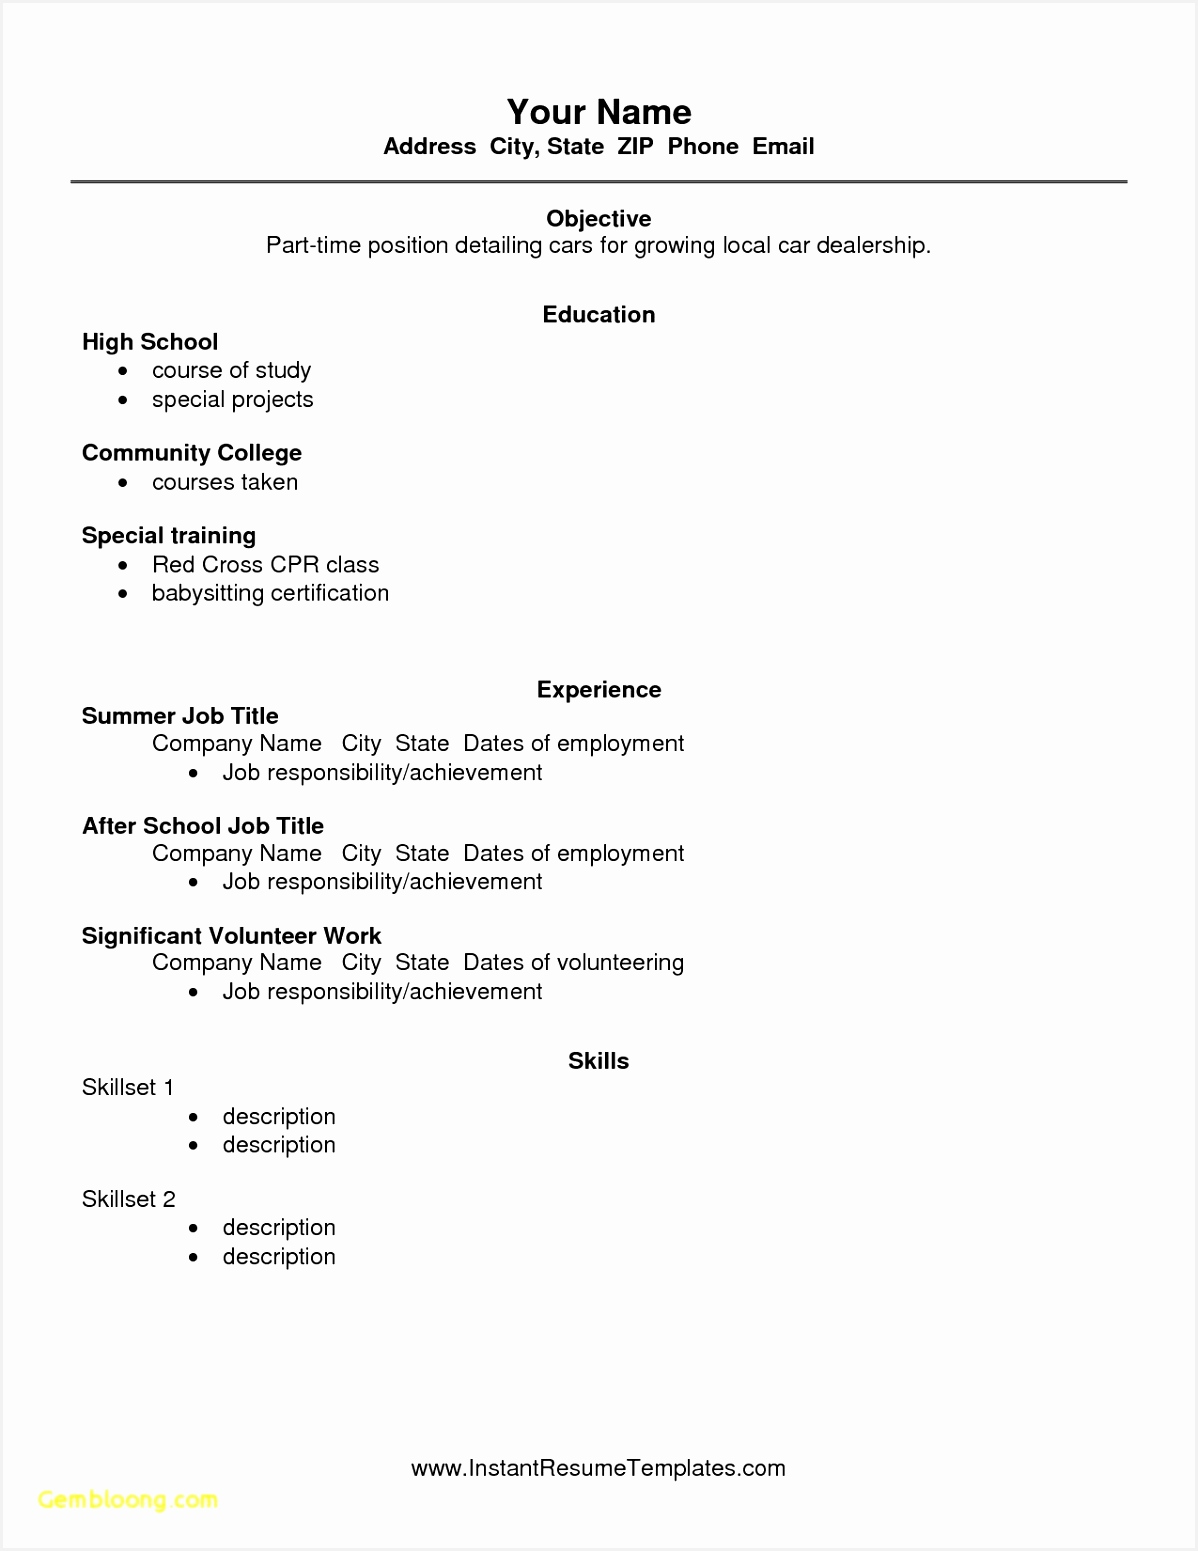 resume for students with no experience elegant resume with no work experience best resume for high 15511198cfhdf